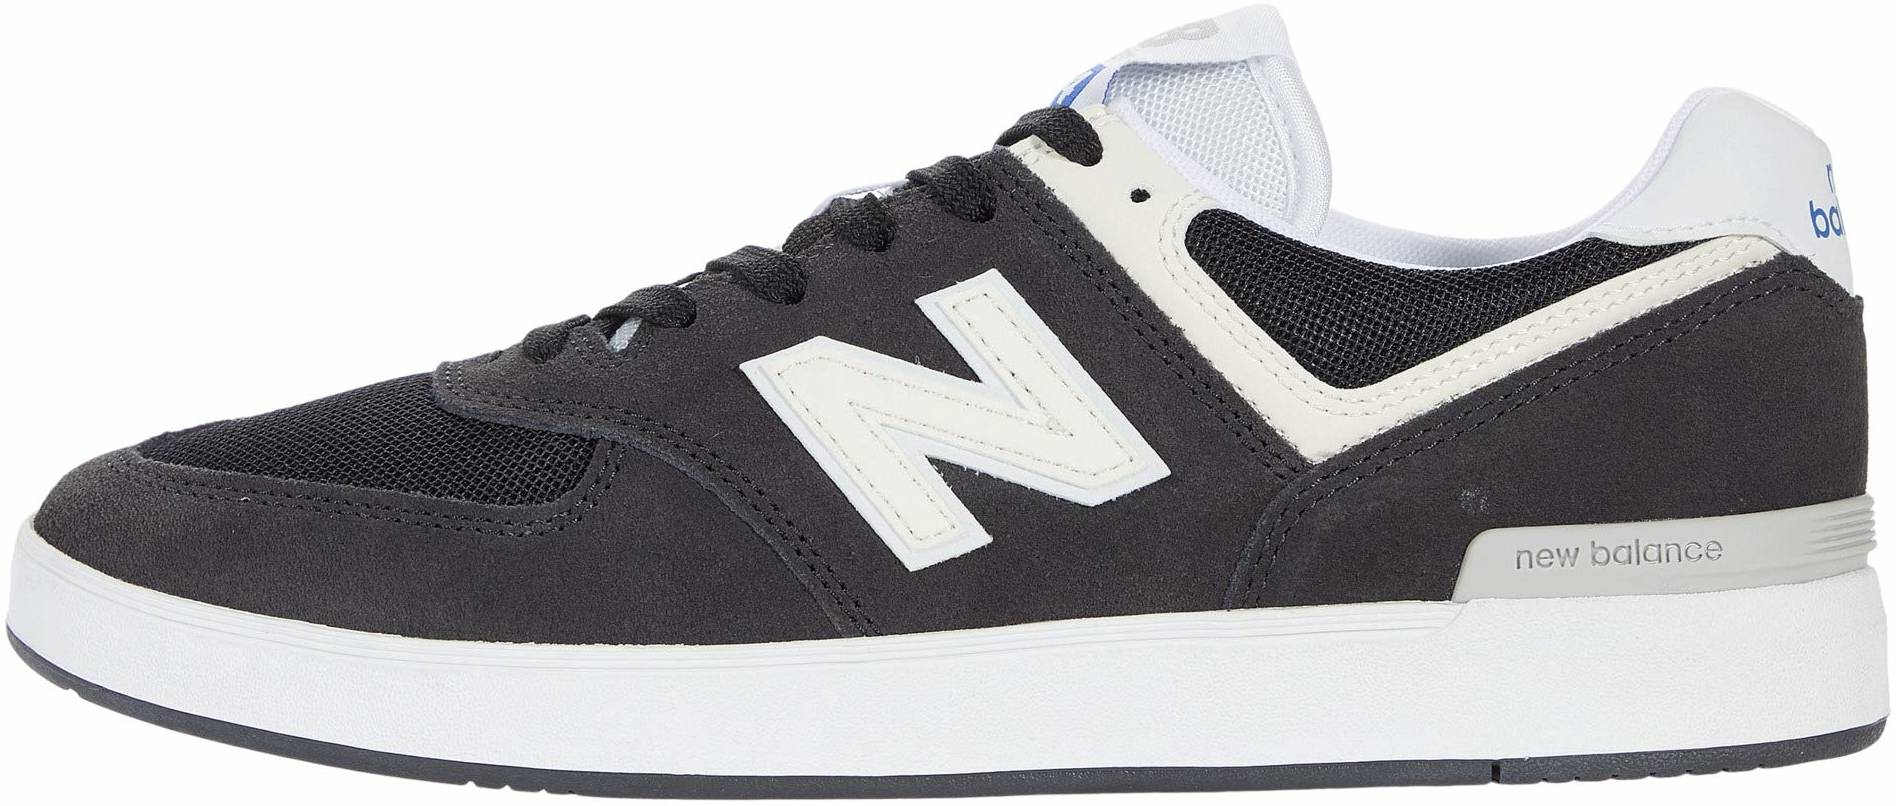 New Balance All Coasts 574 sneakers in 6 colors (only £46) | RunRepeat